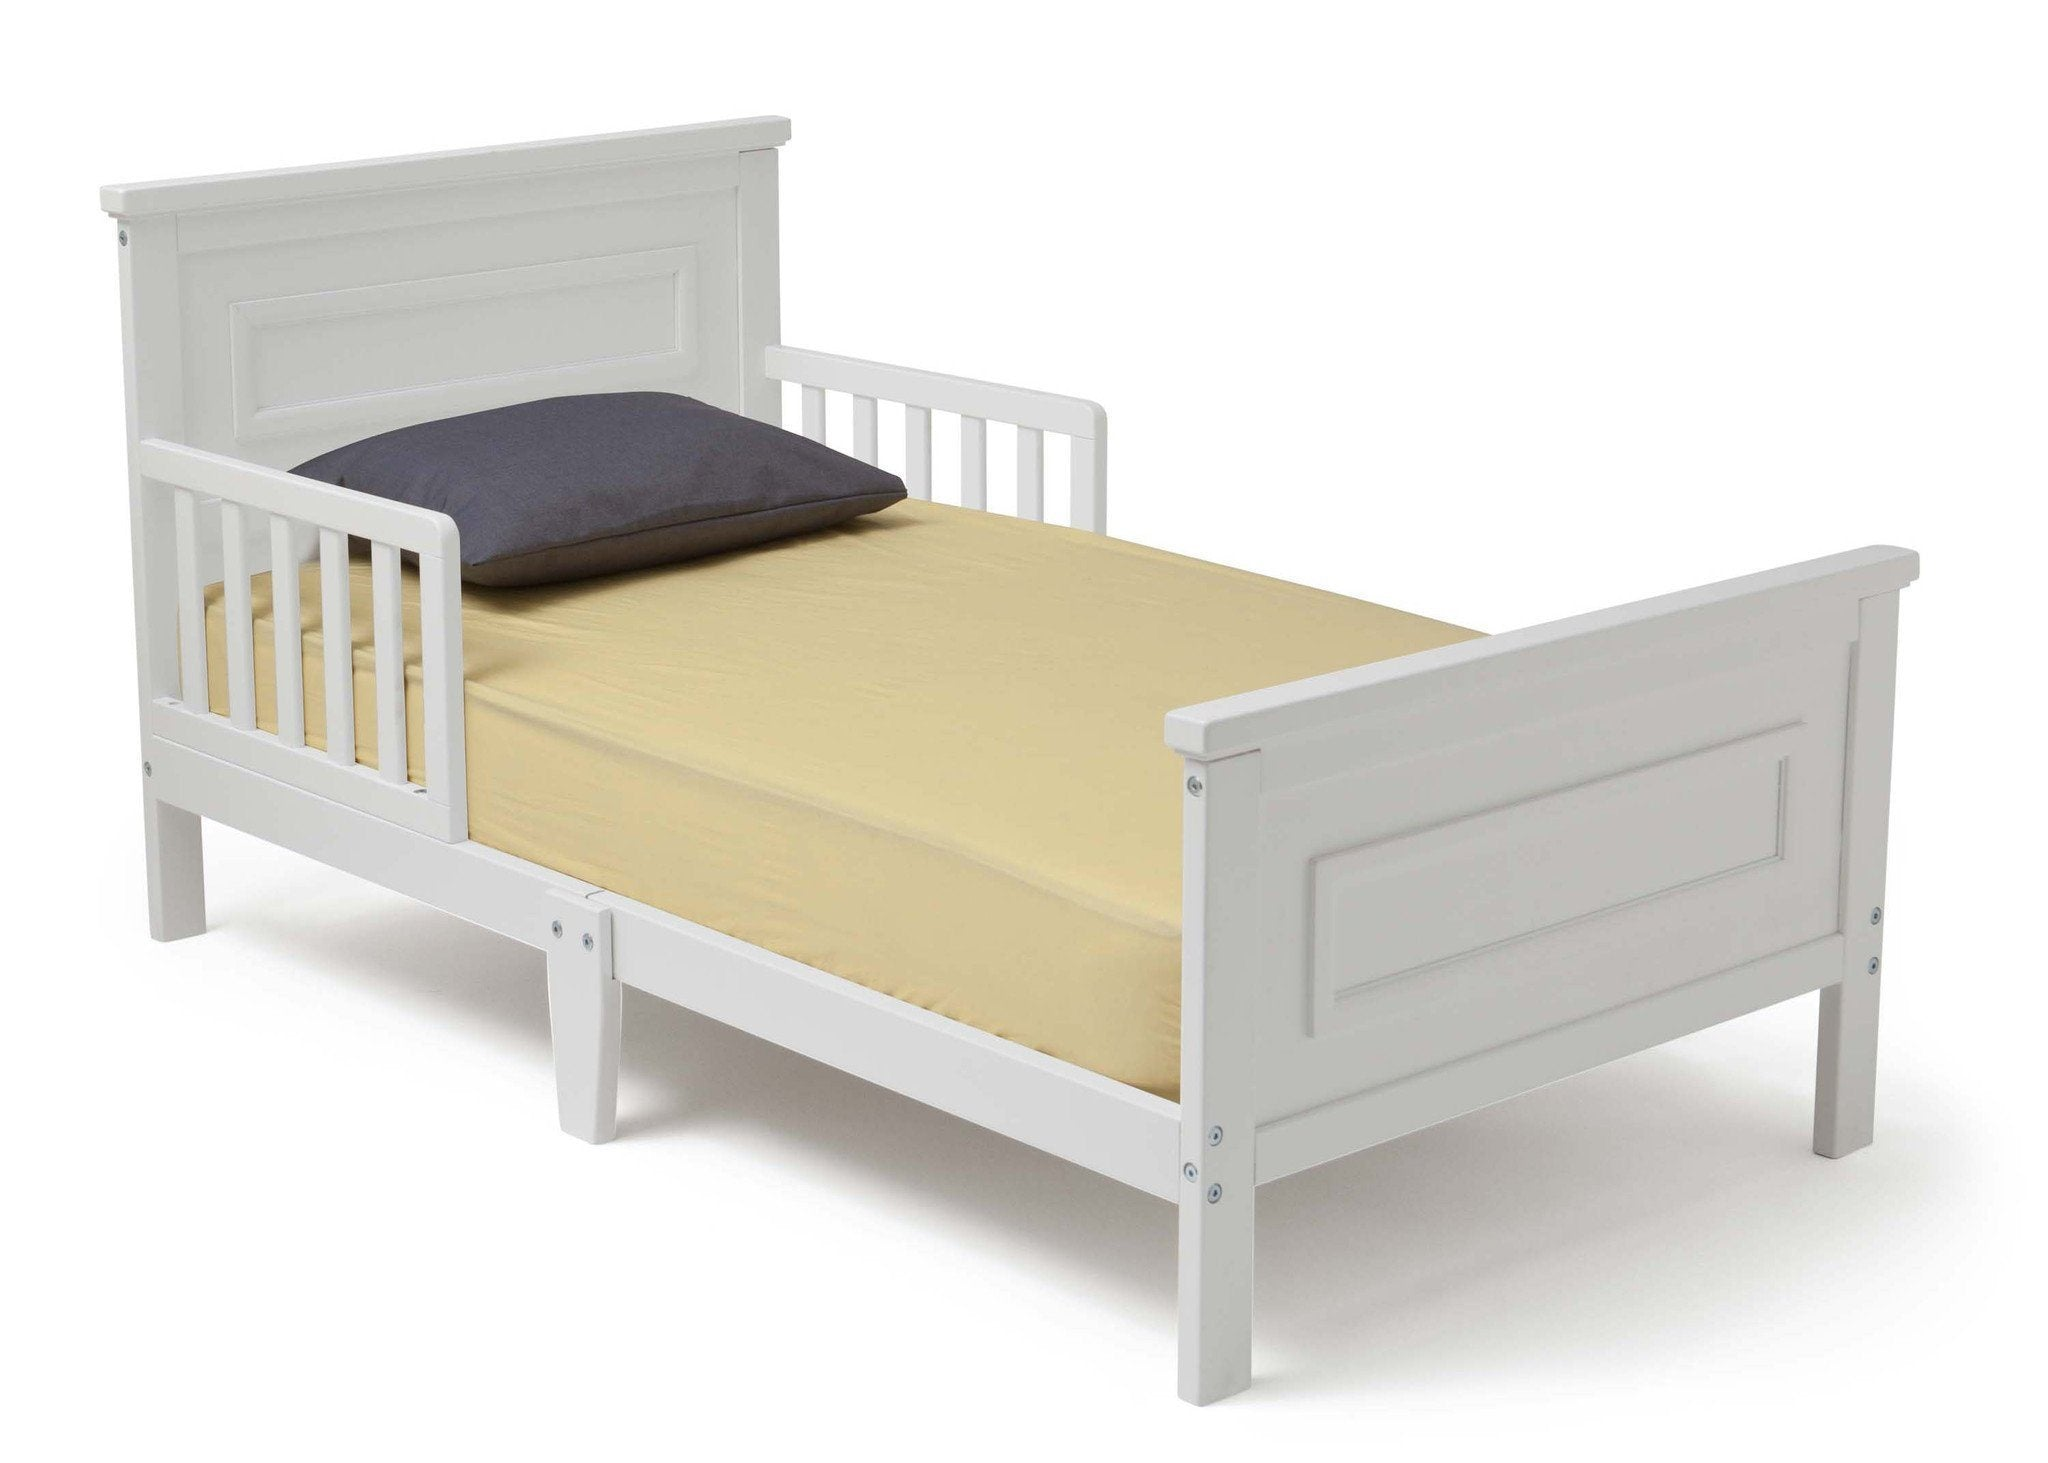 Delta Children White (100) Classic Toddler Bed, Right Side View b2b